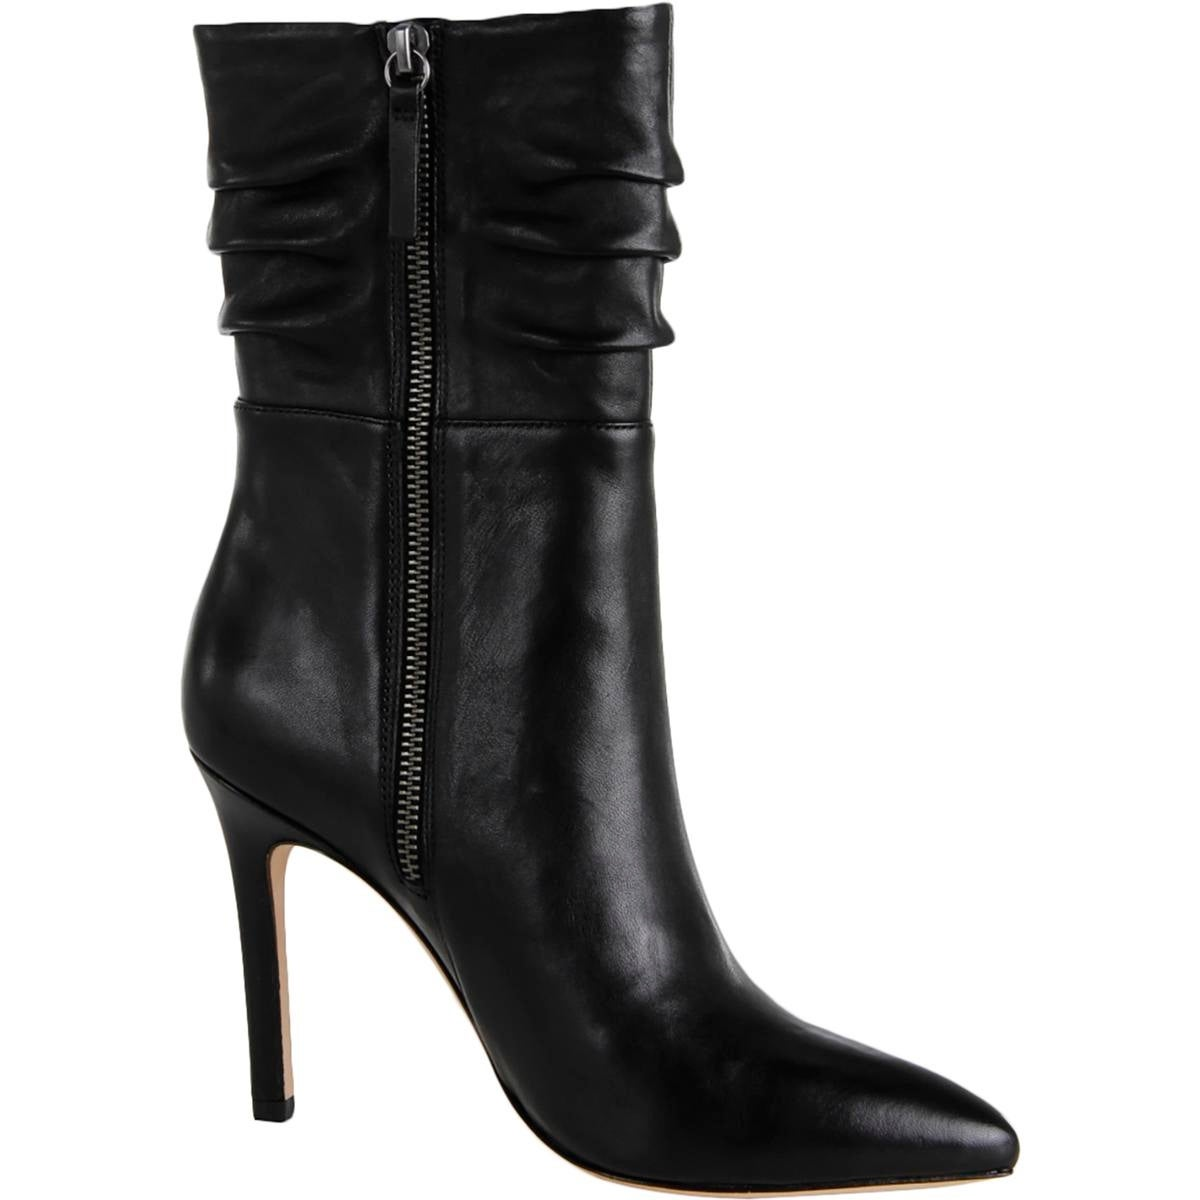 6480cd32d23 Shop Halston Heritage Womens Heather Mid-Calf Boots Leather Pointed Toe -  On Sale - Free Shipping Today - Overstock - 18394003